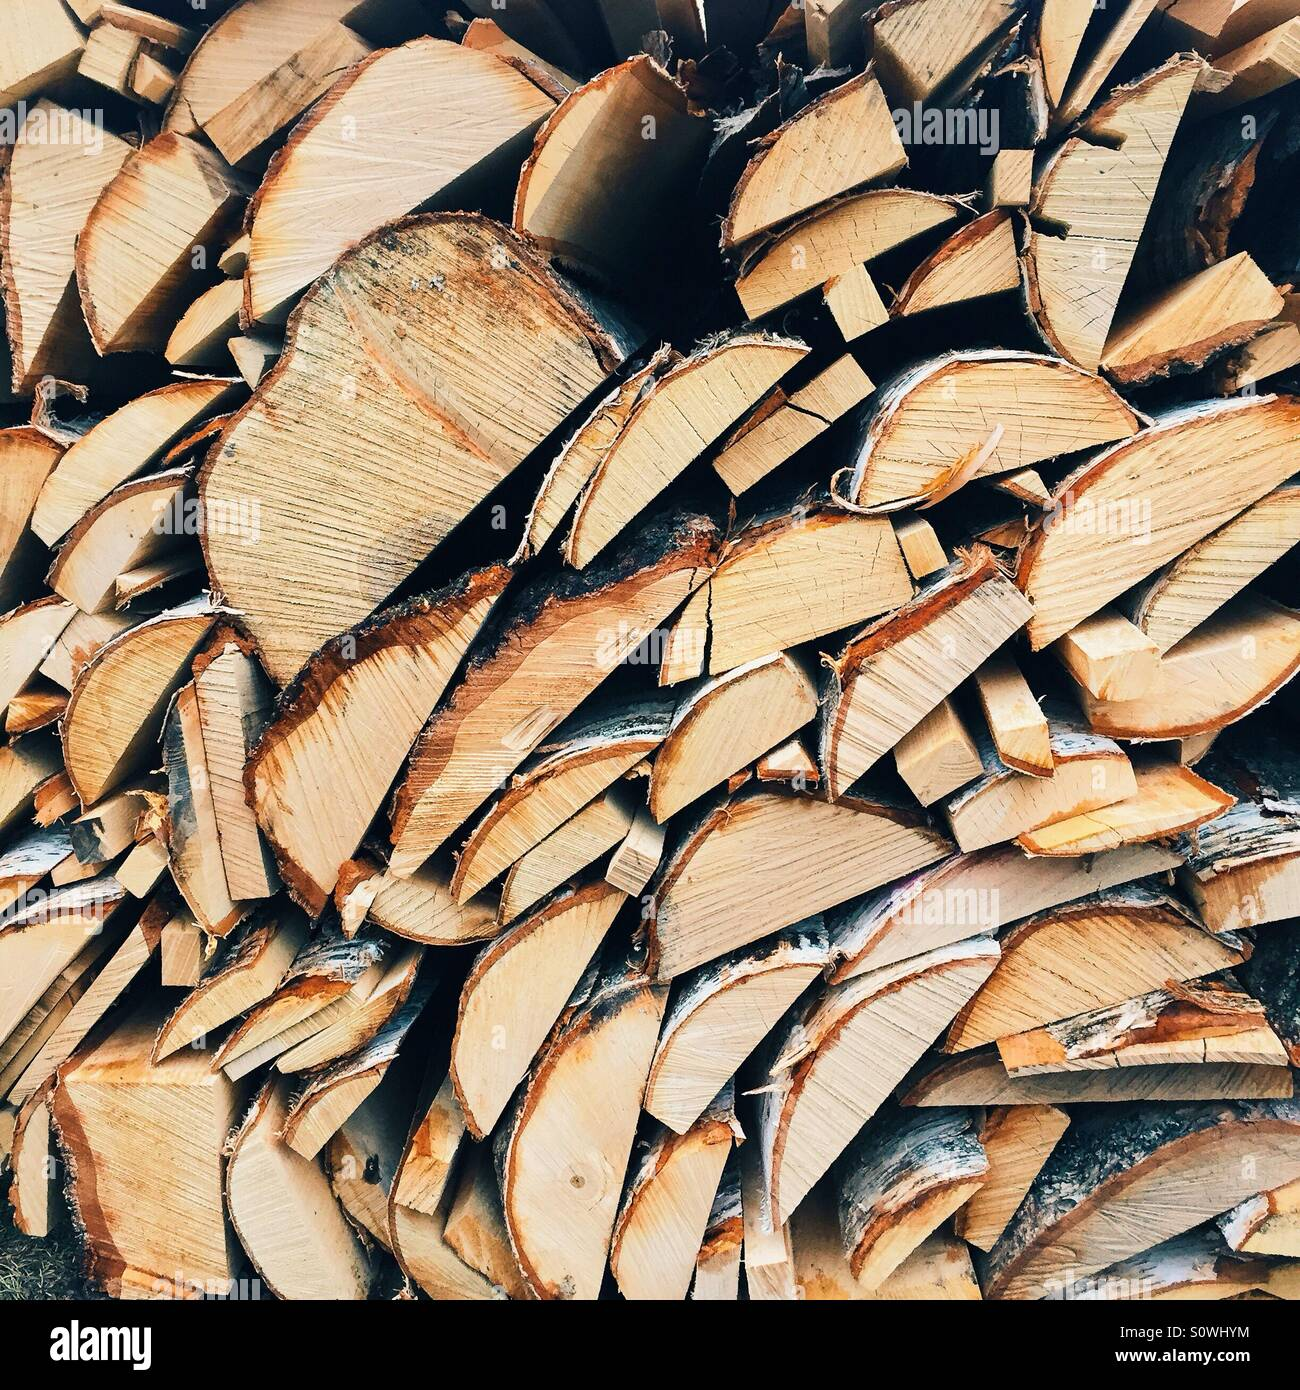 Firewood prepared for the winter - Stock Image